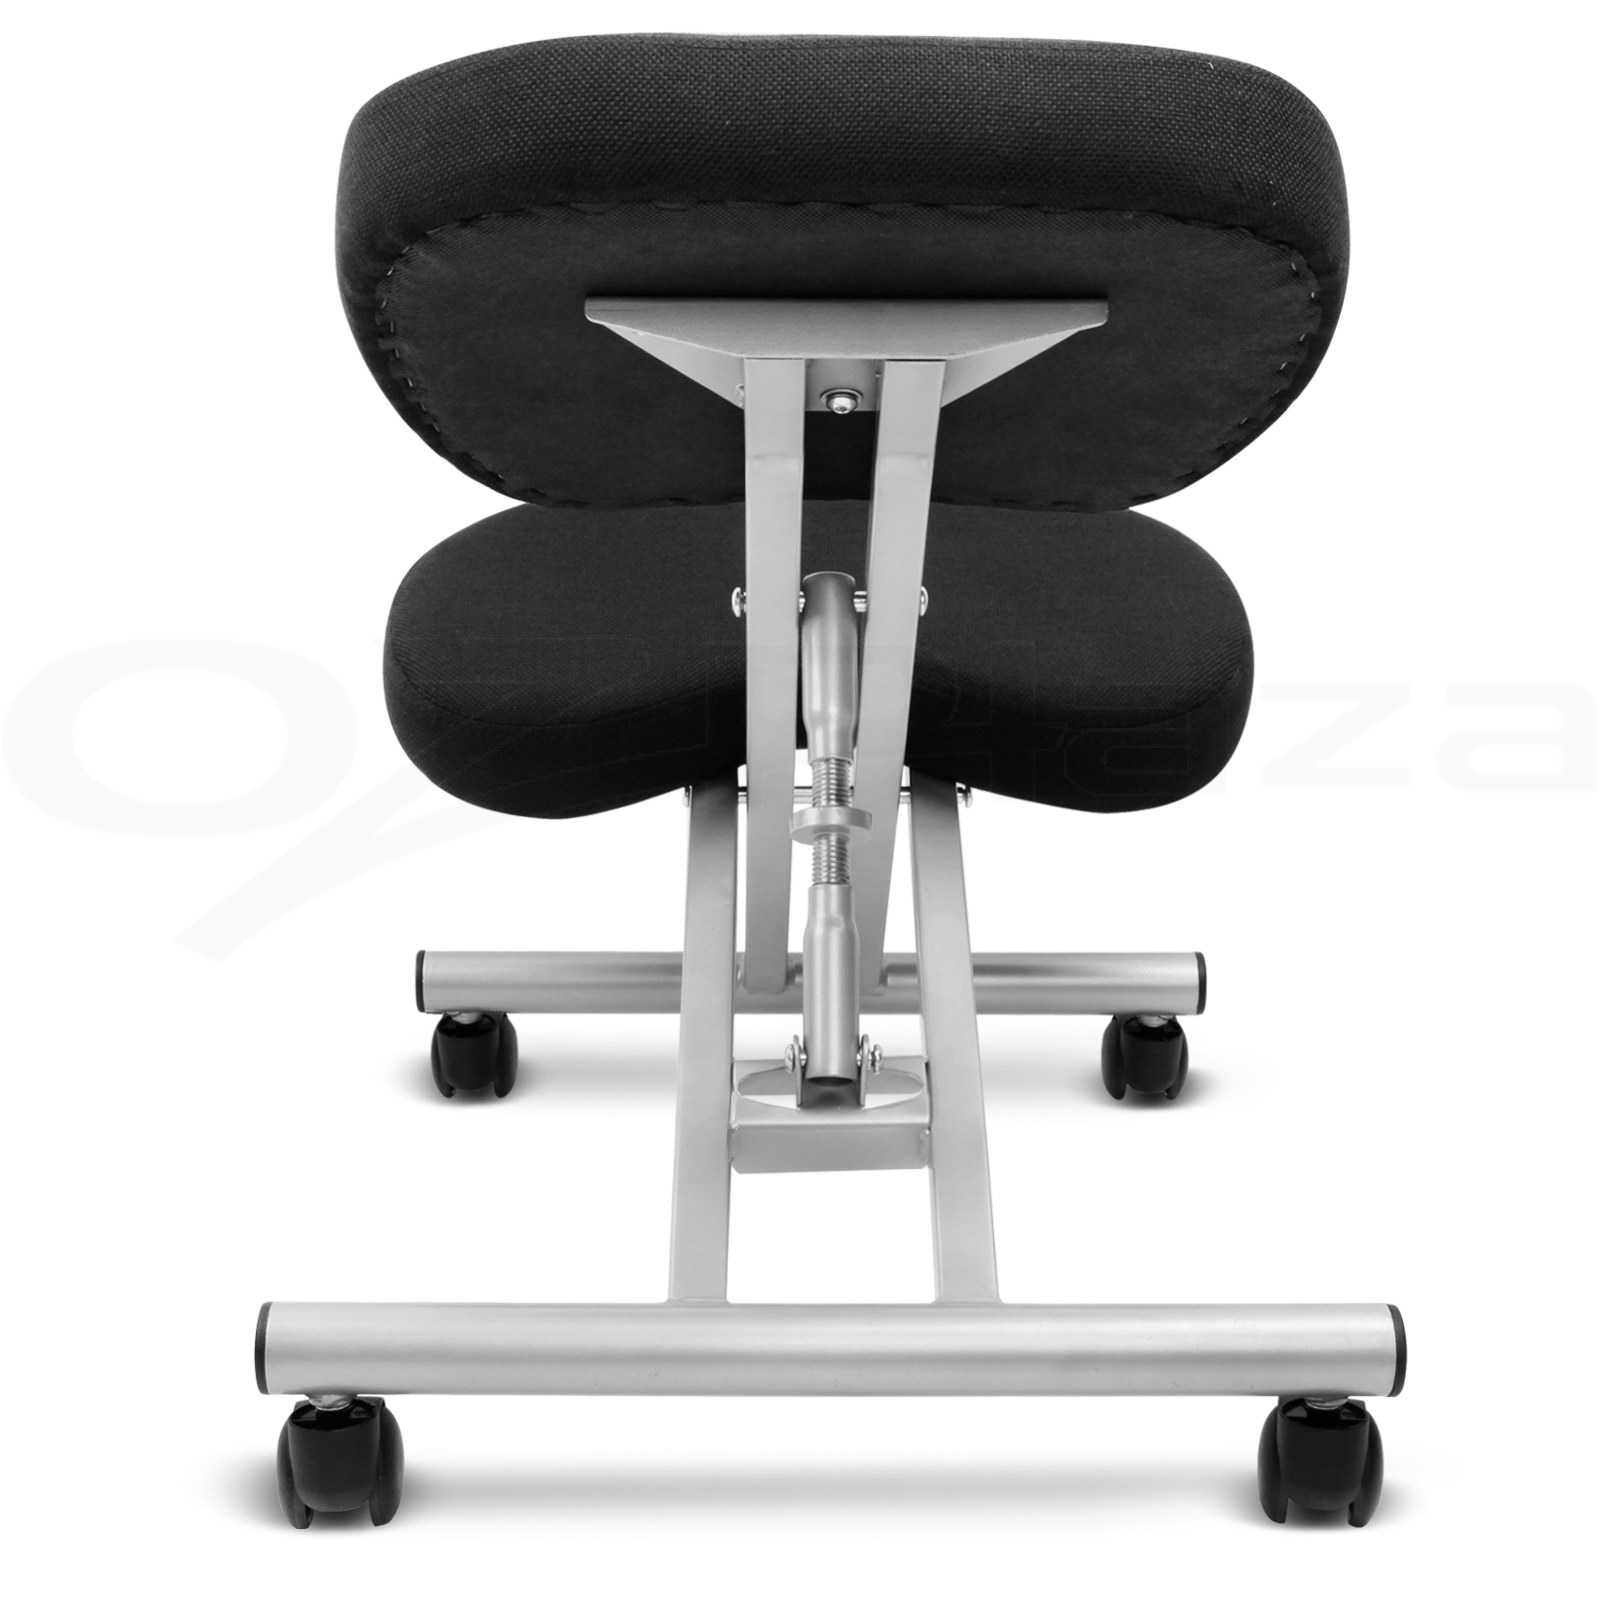 posture chair ebay tables and chairs buffalo ny adjustable kneeling office stool stretch knee yoga